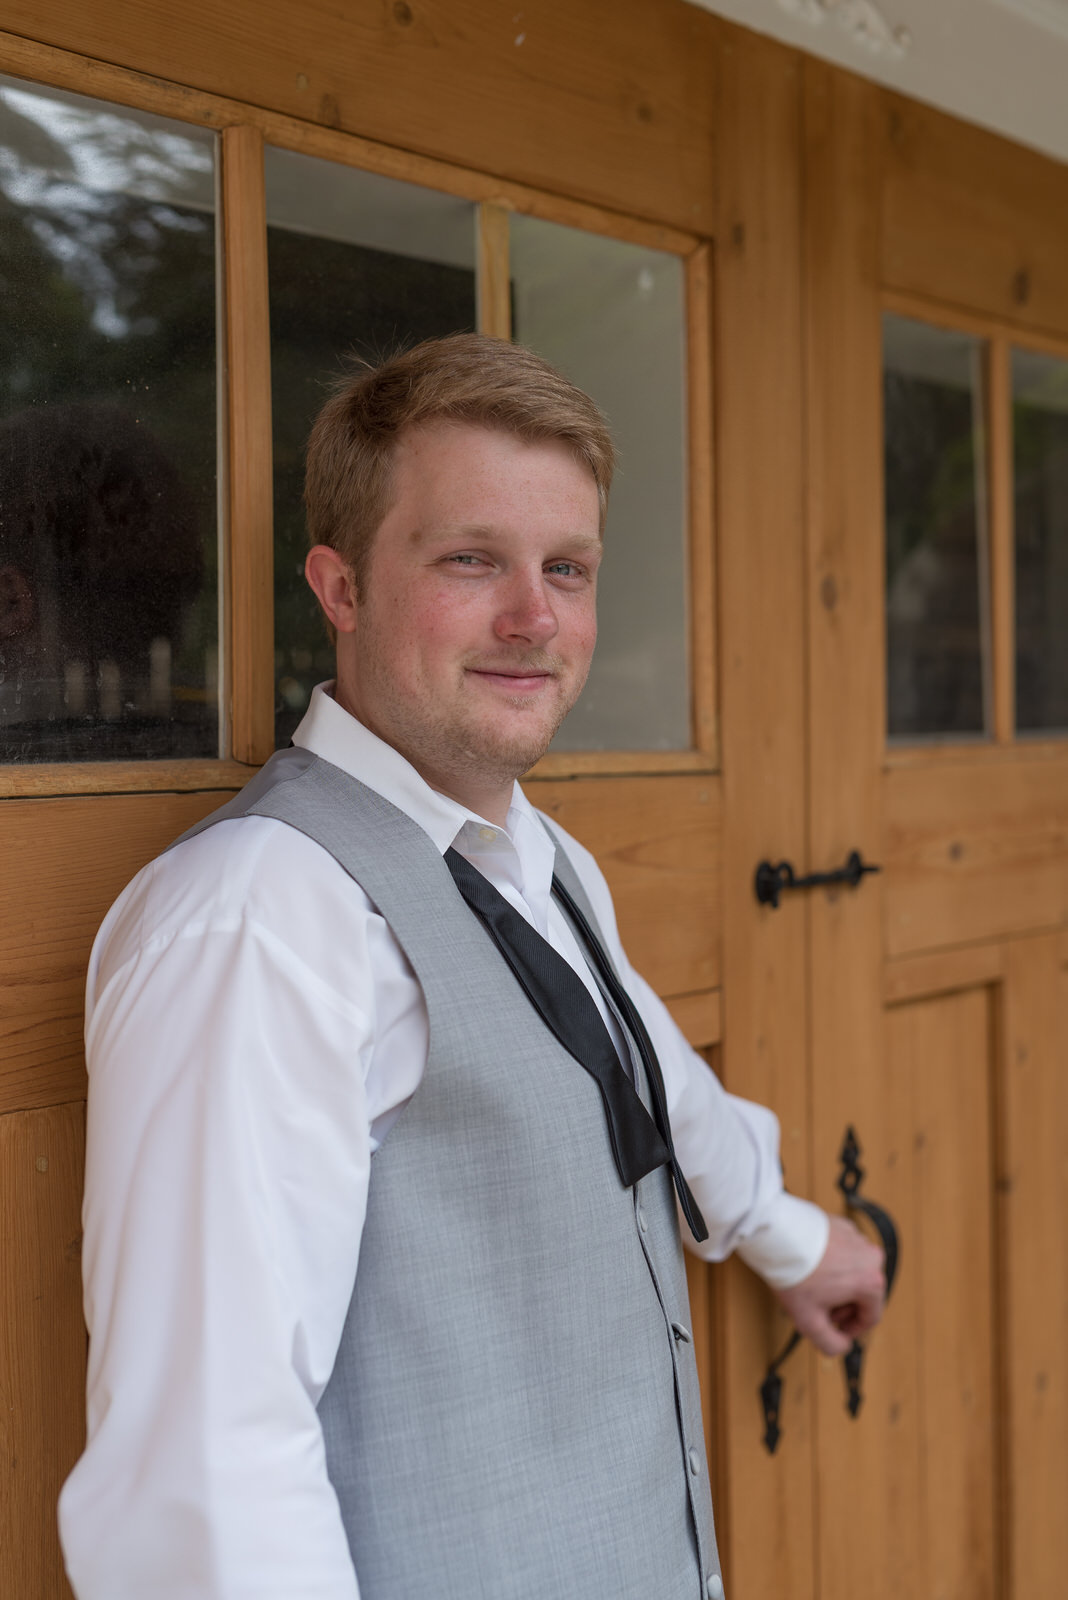 Groom by Large Wooden Doors at The Grande at Kennesaw